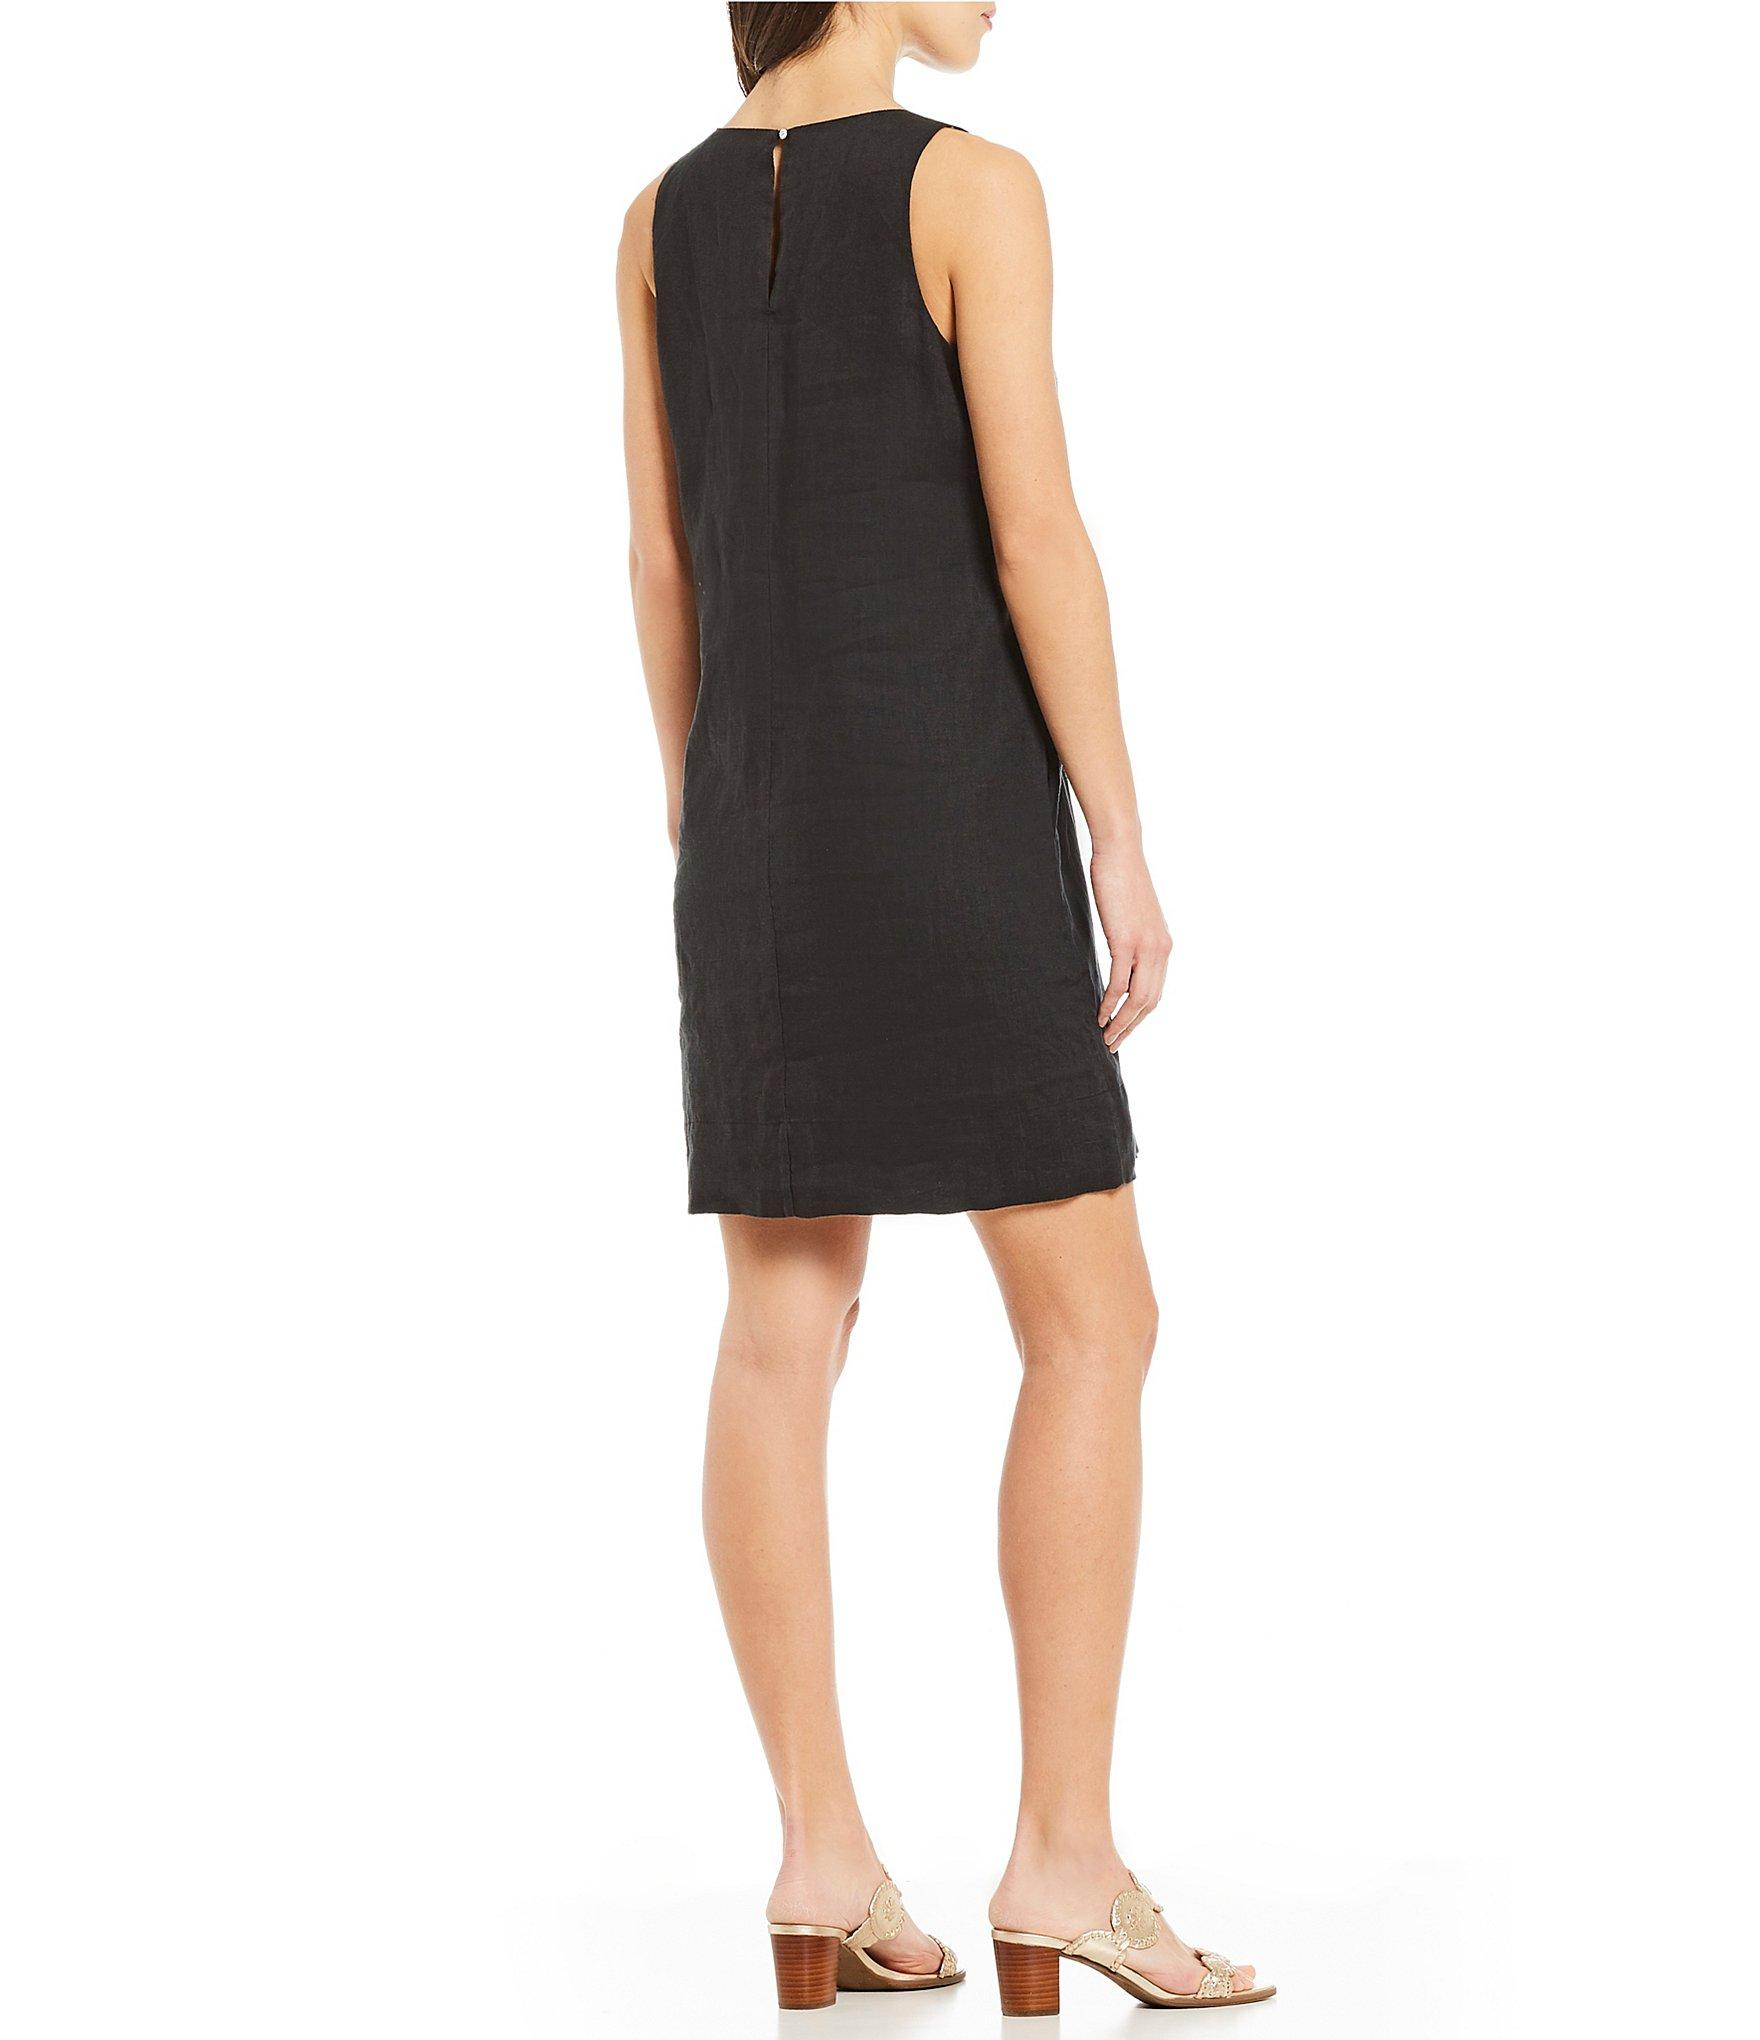 c55c7d8635 Tommy Bahama - Black Lux Linen Embellished Shift Dress - Lyst. View  fullscreen